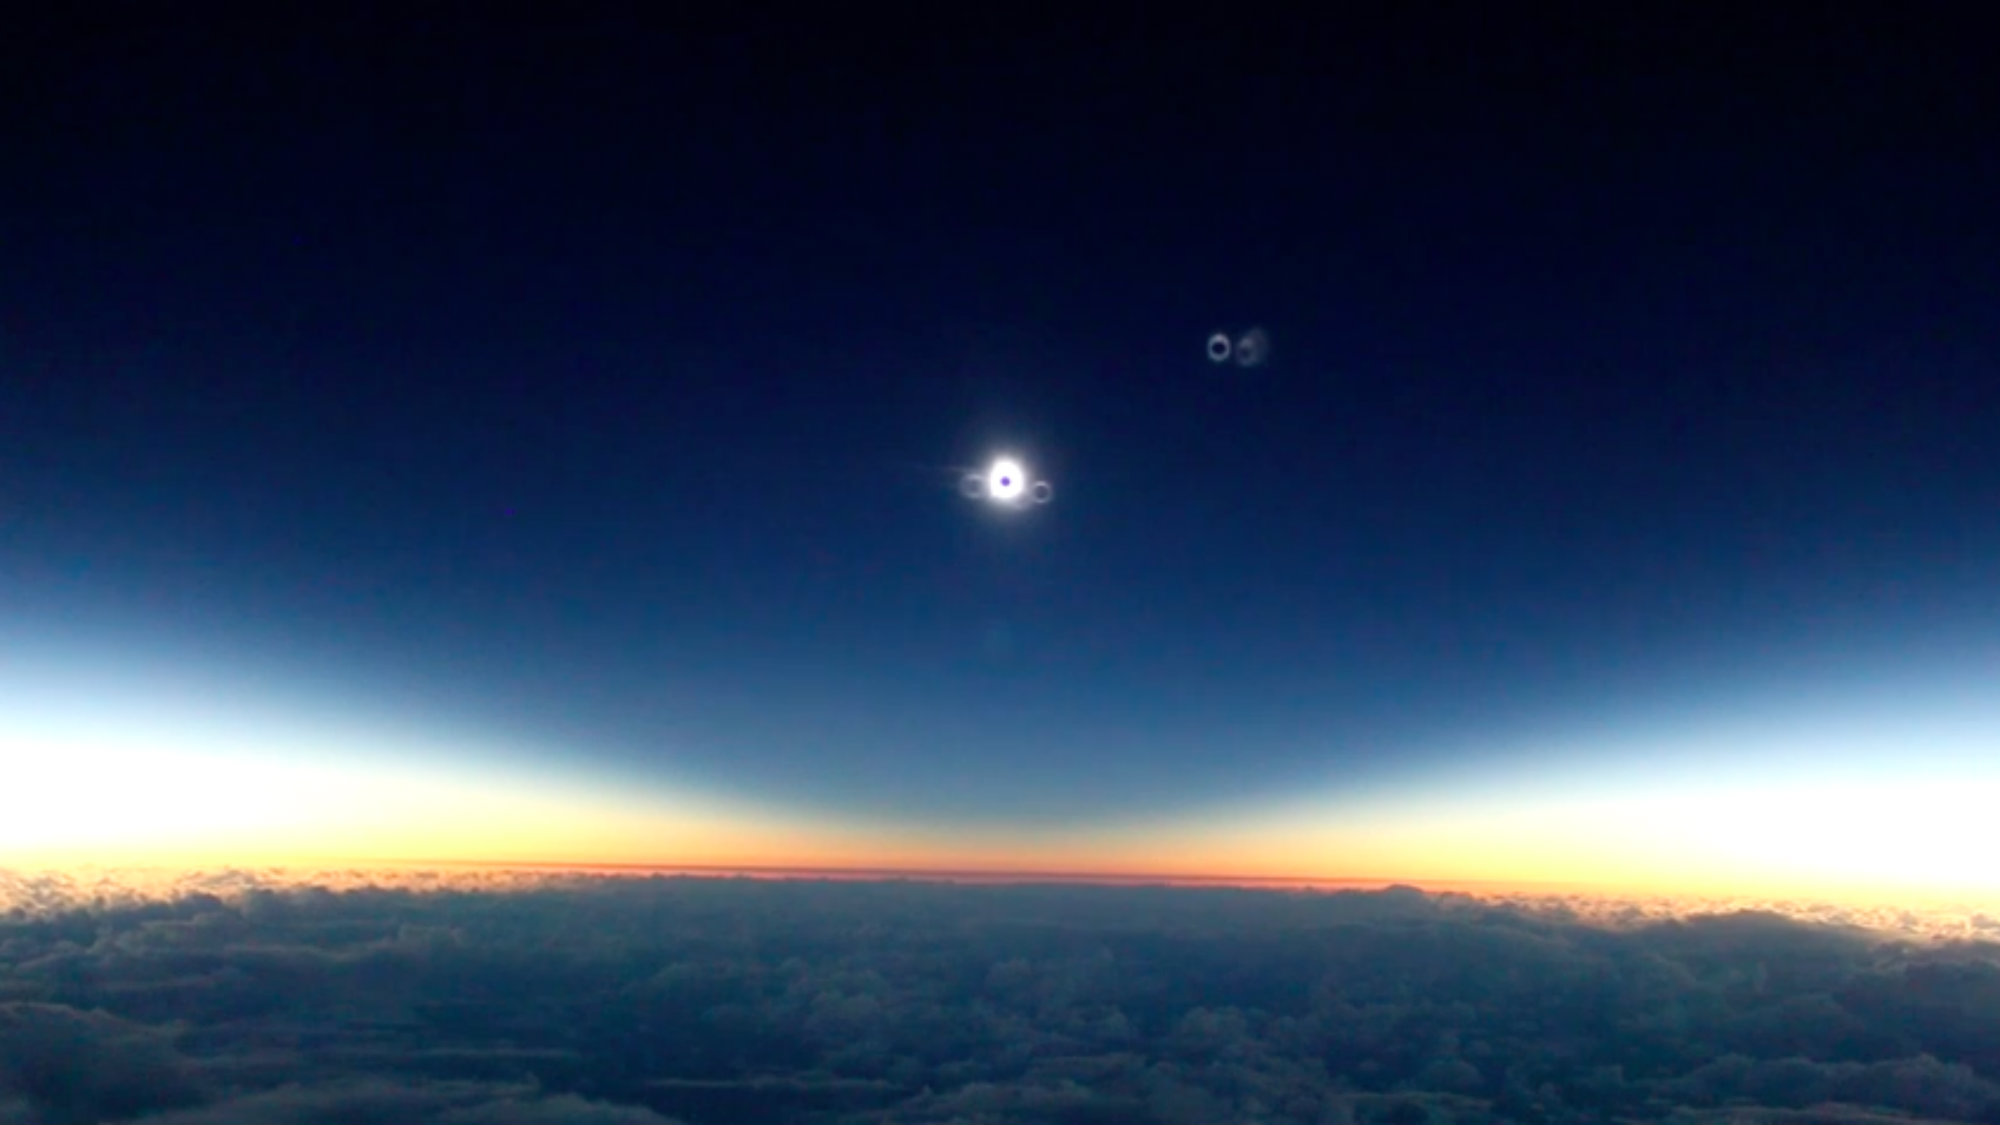 A still from astronomer Mike Kentrianakis's video of a total solar eclipse.